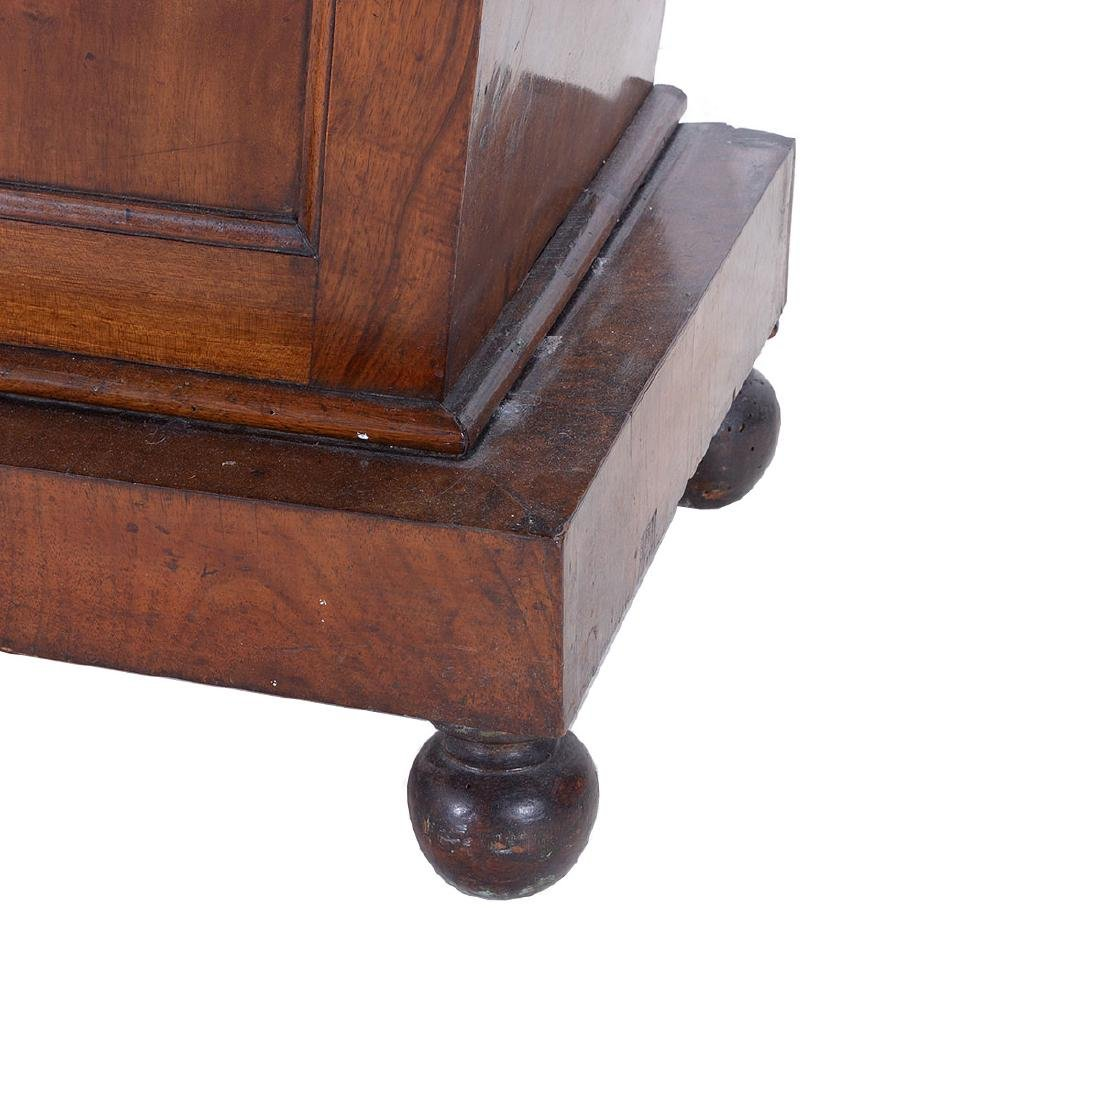 Regency Mahogany Sarcophagus Form Chest, First Quarter - 4